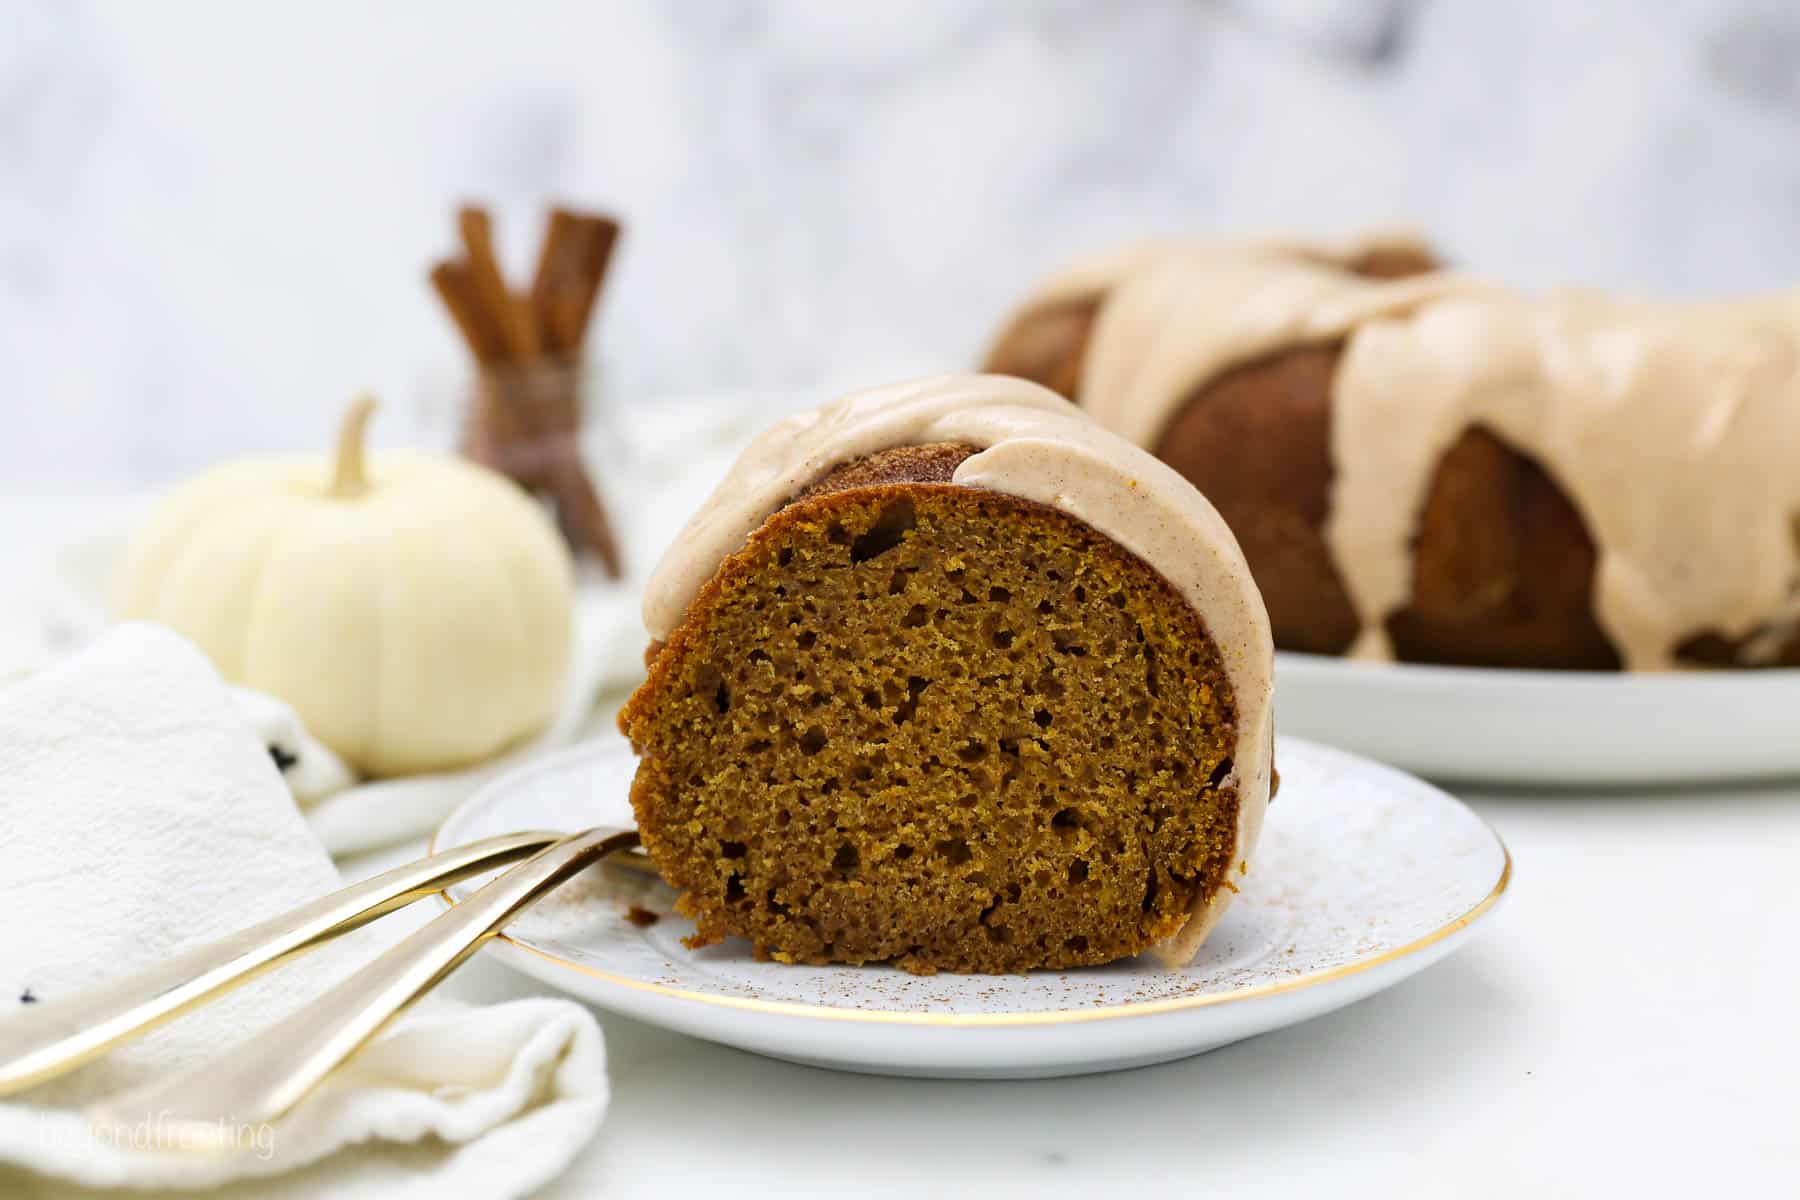 A wide angle shot of a slice of moist pumpkin cake with a glaze, and two gold forks hanging off the white plate